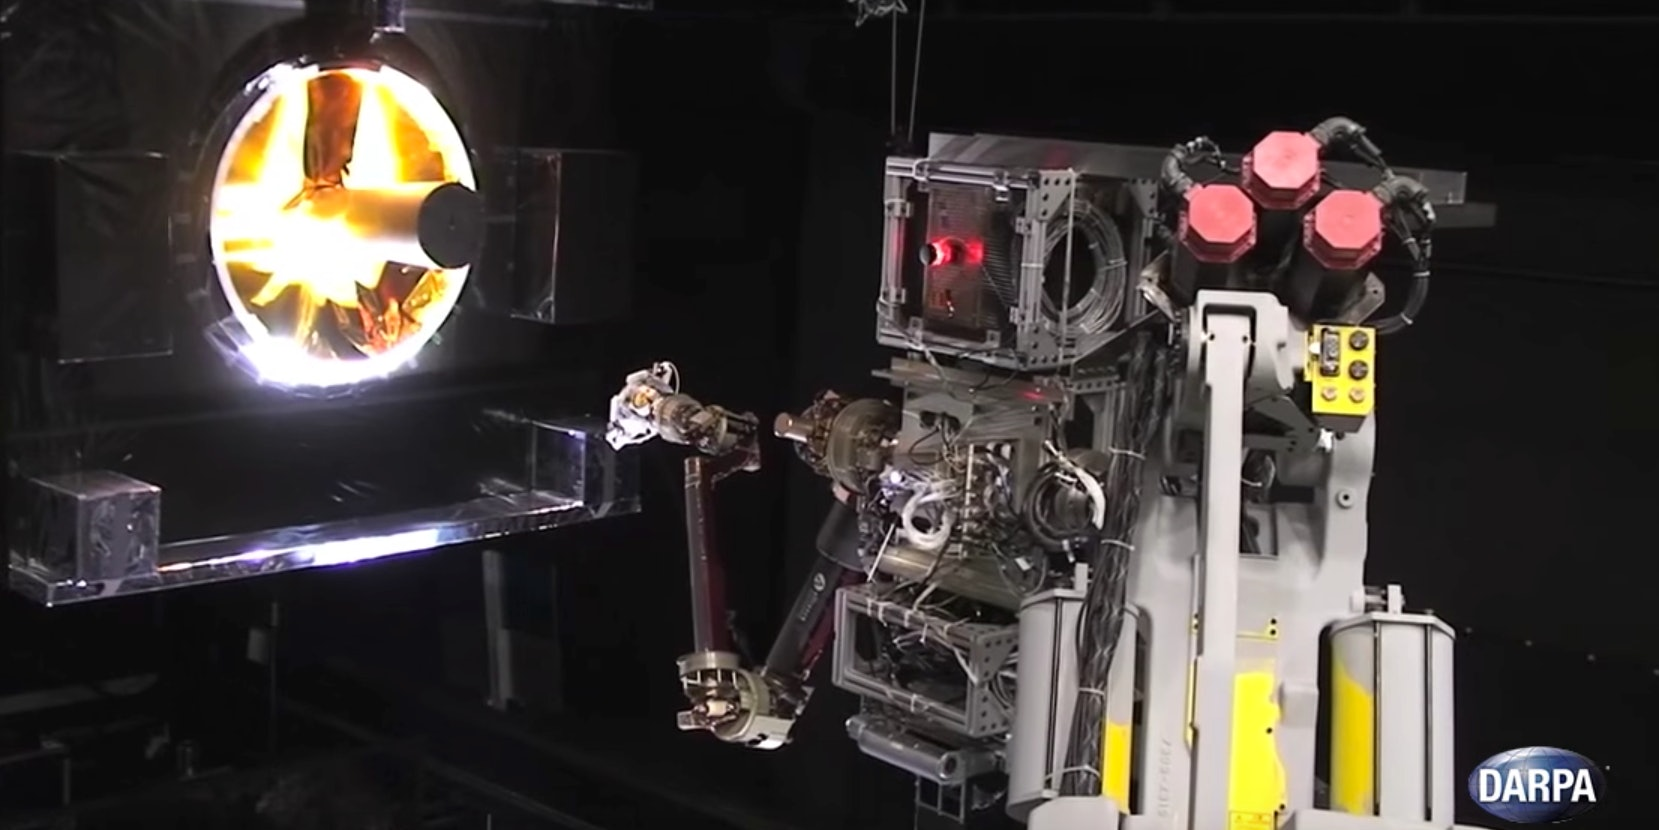 DARPA Faces Off With Republicans Over Space Robots